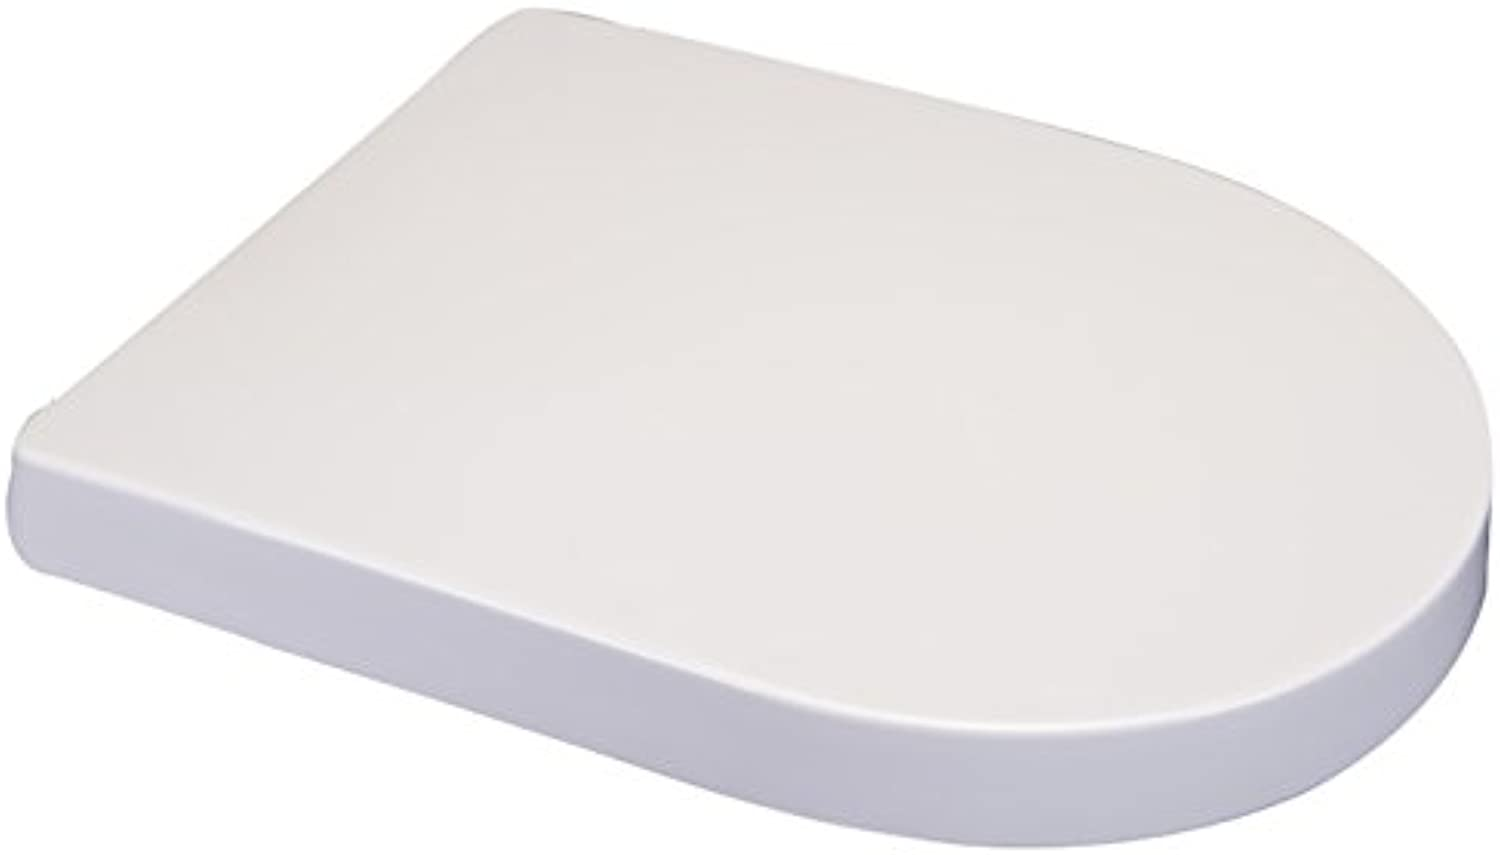 Topsed A Toilet Seat Cover With A Cushioning Toilet Seat Cover,Large U Type Long 45.5Cm Wide 35Cmsimple And Comfortable General Slow Down Comfort Antiseptic European